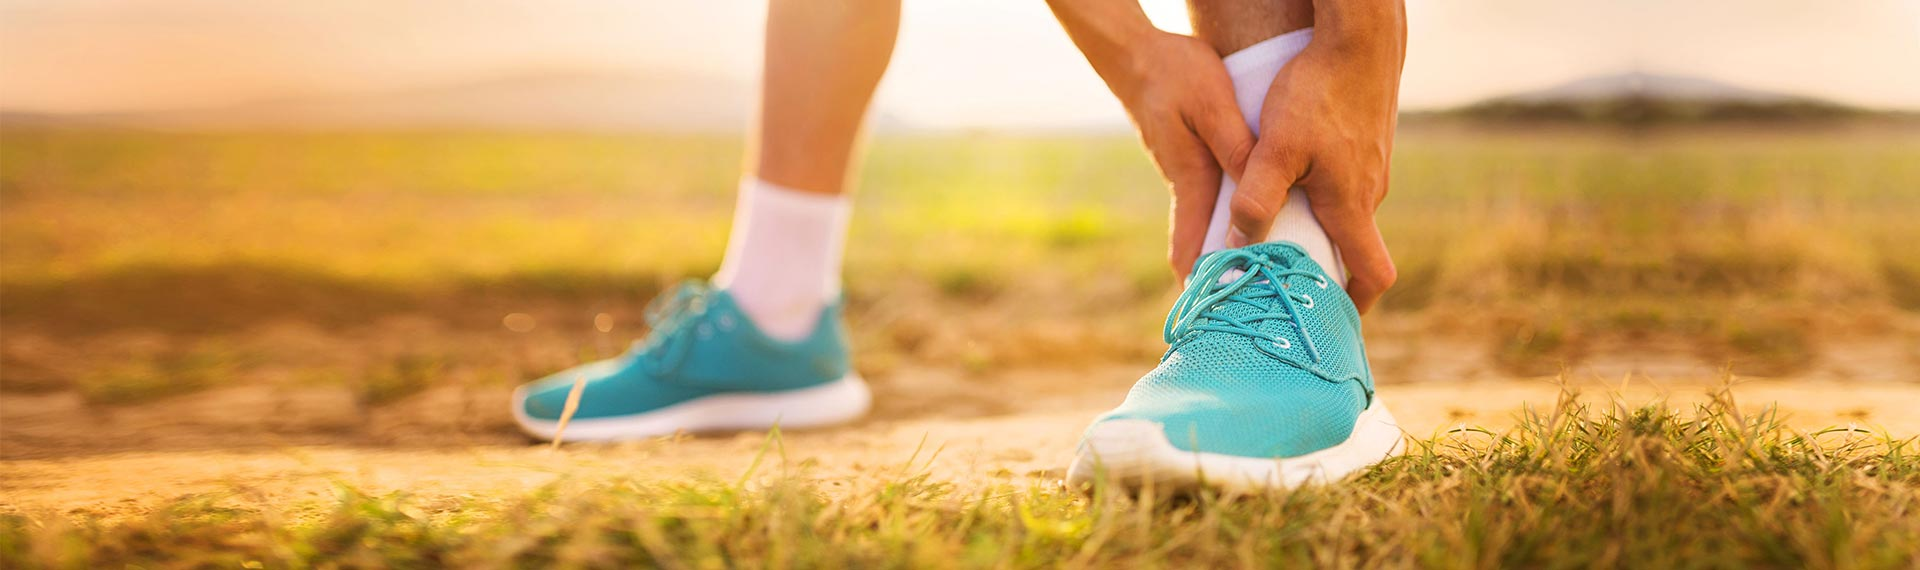 Comprehensive Orthopedic Care for Foot and Ankle Pain | NOSA Orthopedics, Naples, FL